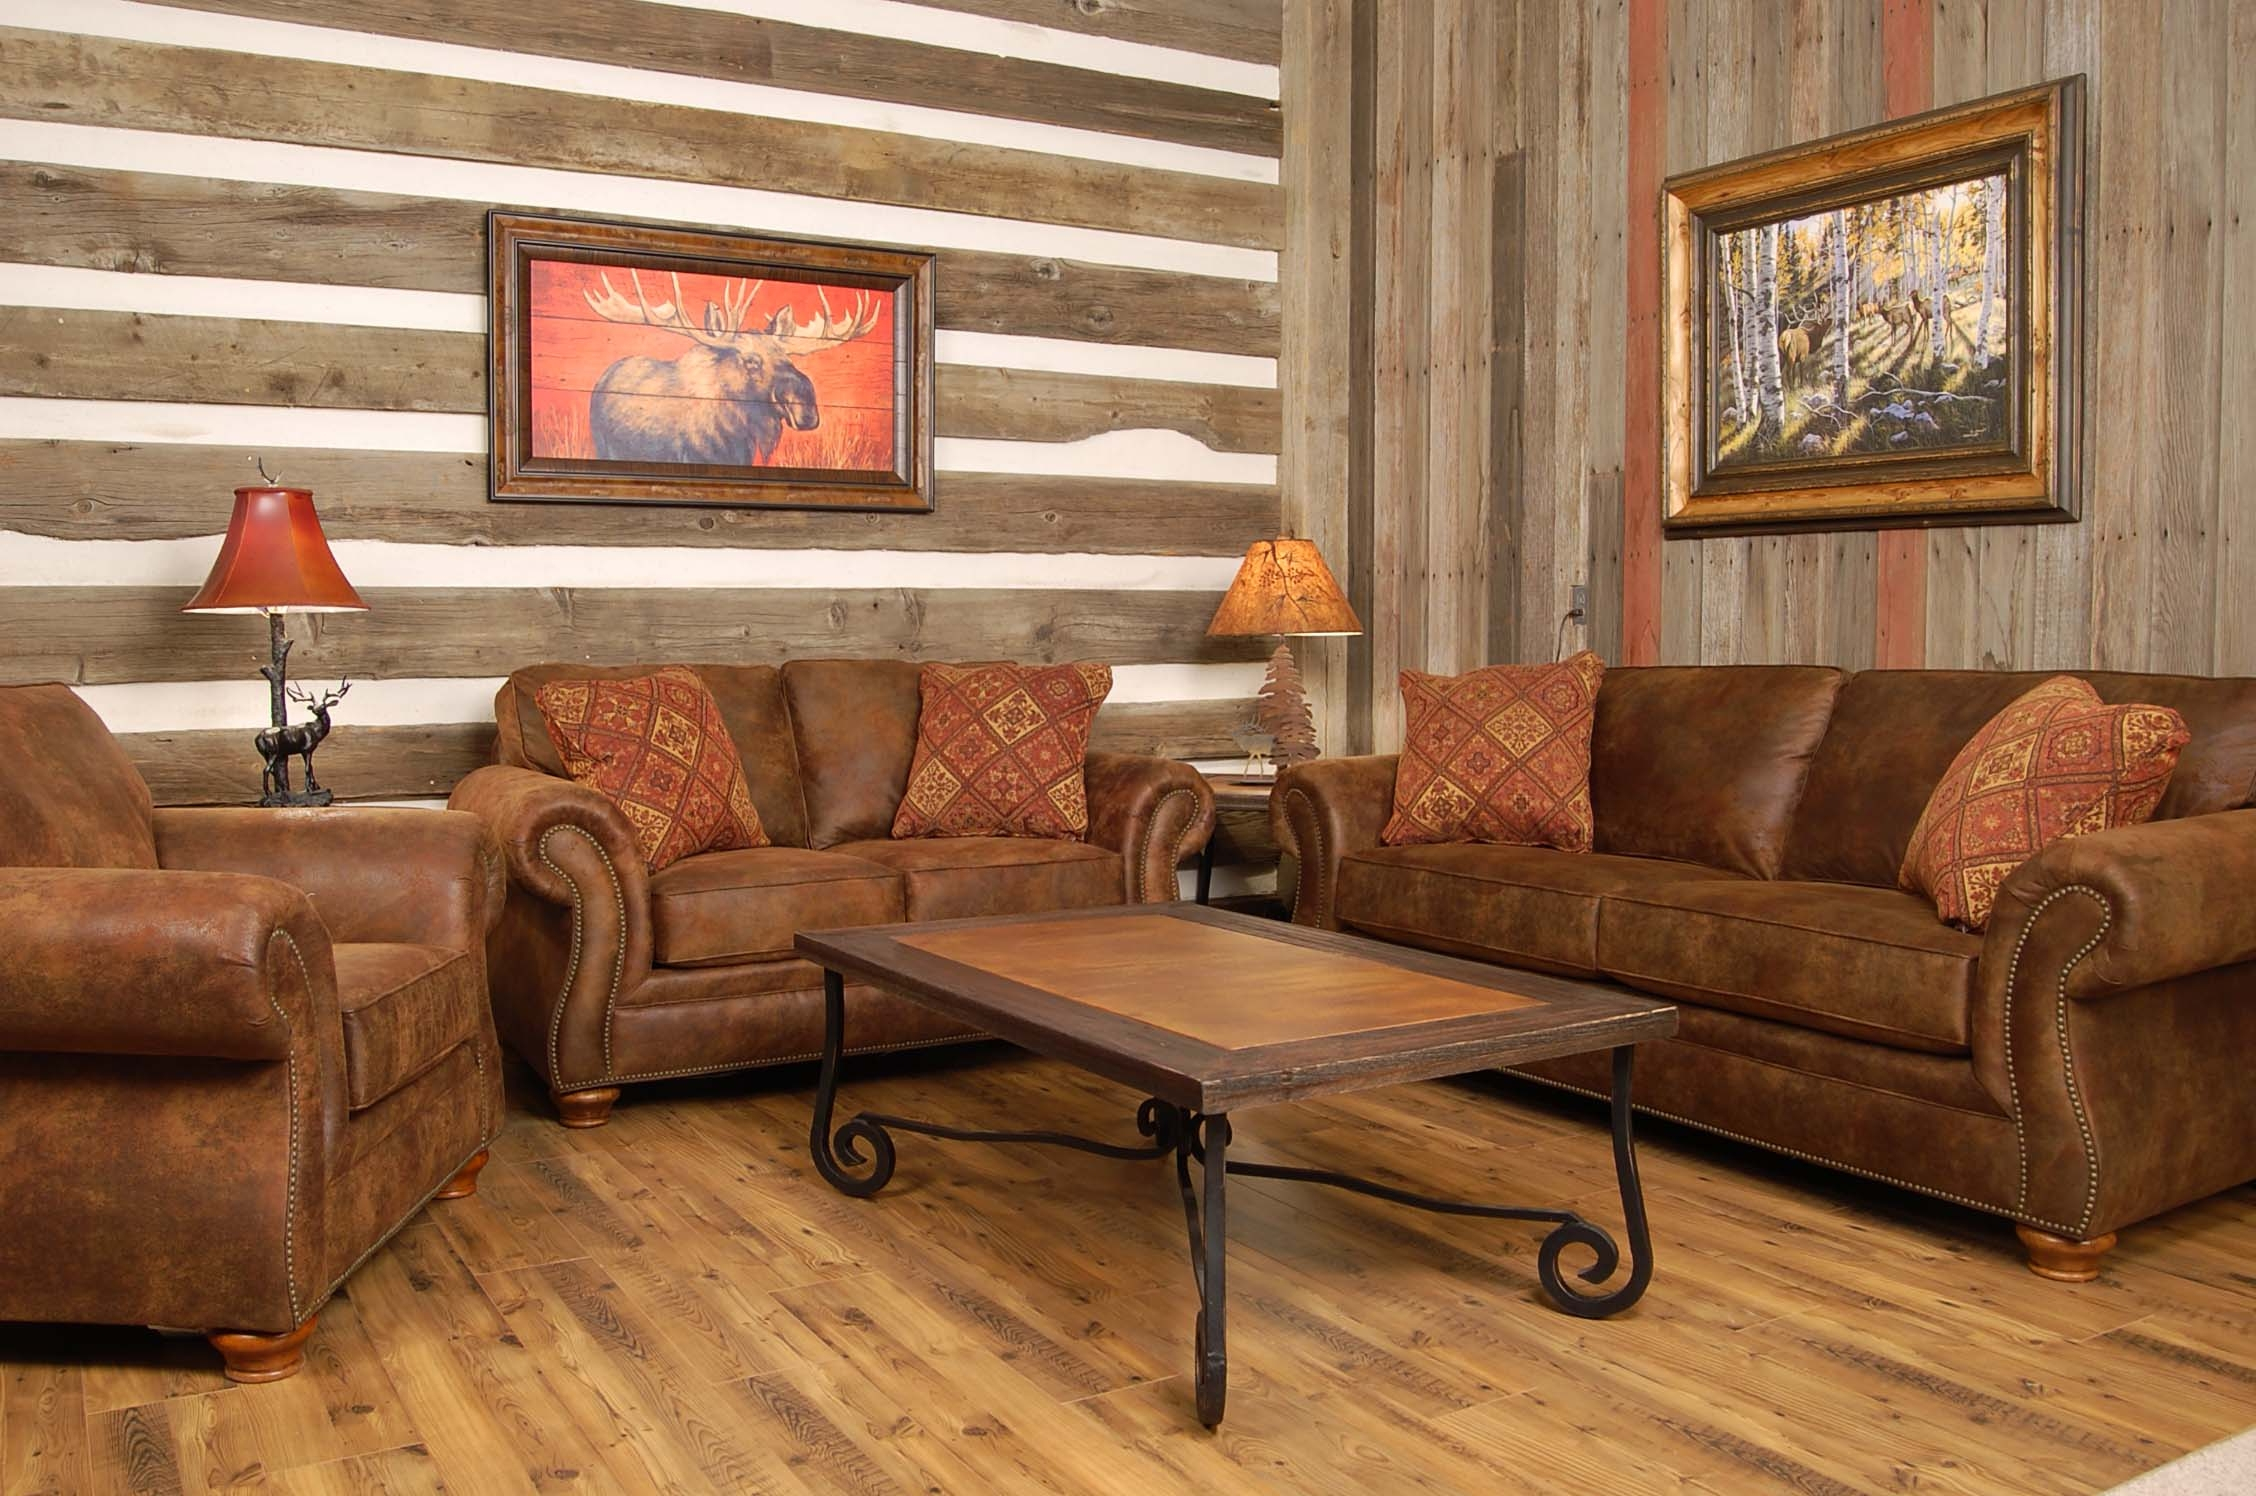 How To Decorate Your Living Room Through Rustic Living Room in 15 Some of the Coolest Designs of How to Build Rustic Living Room Sets